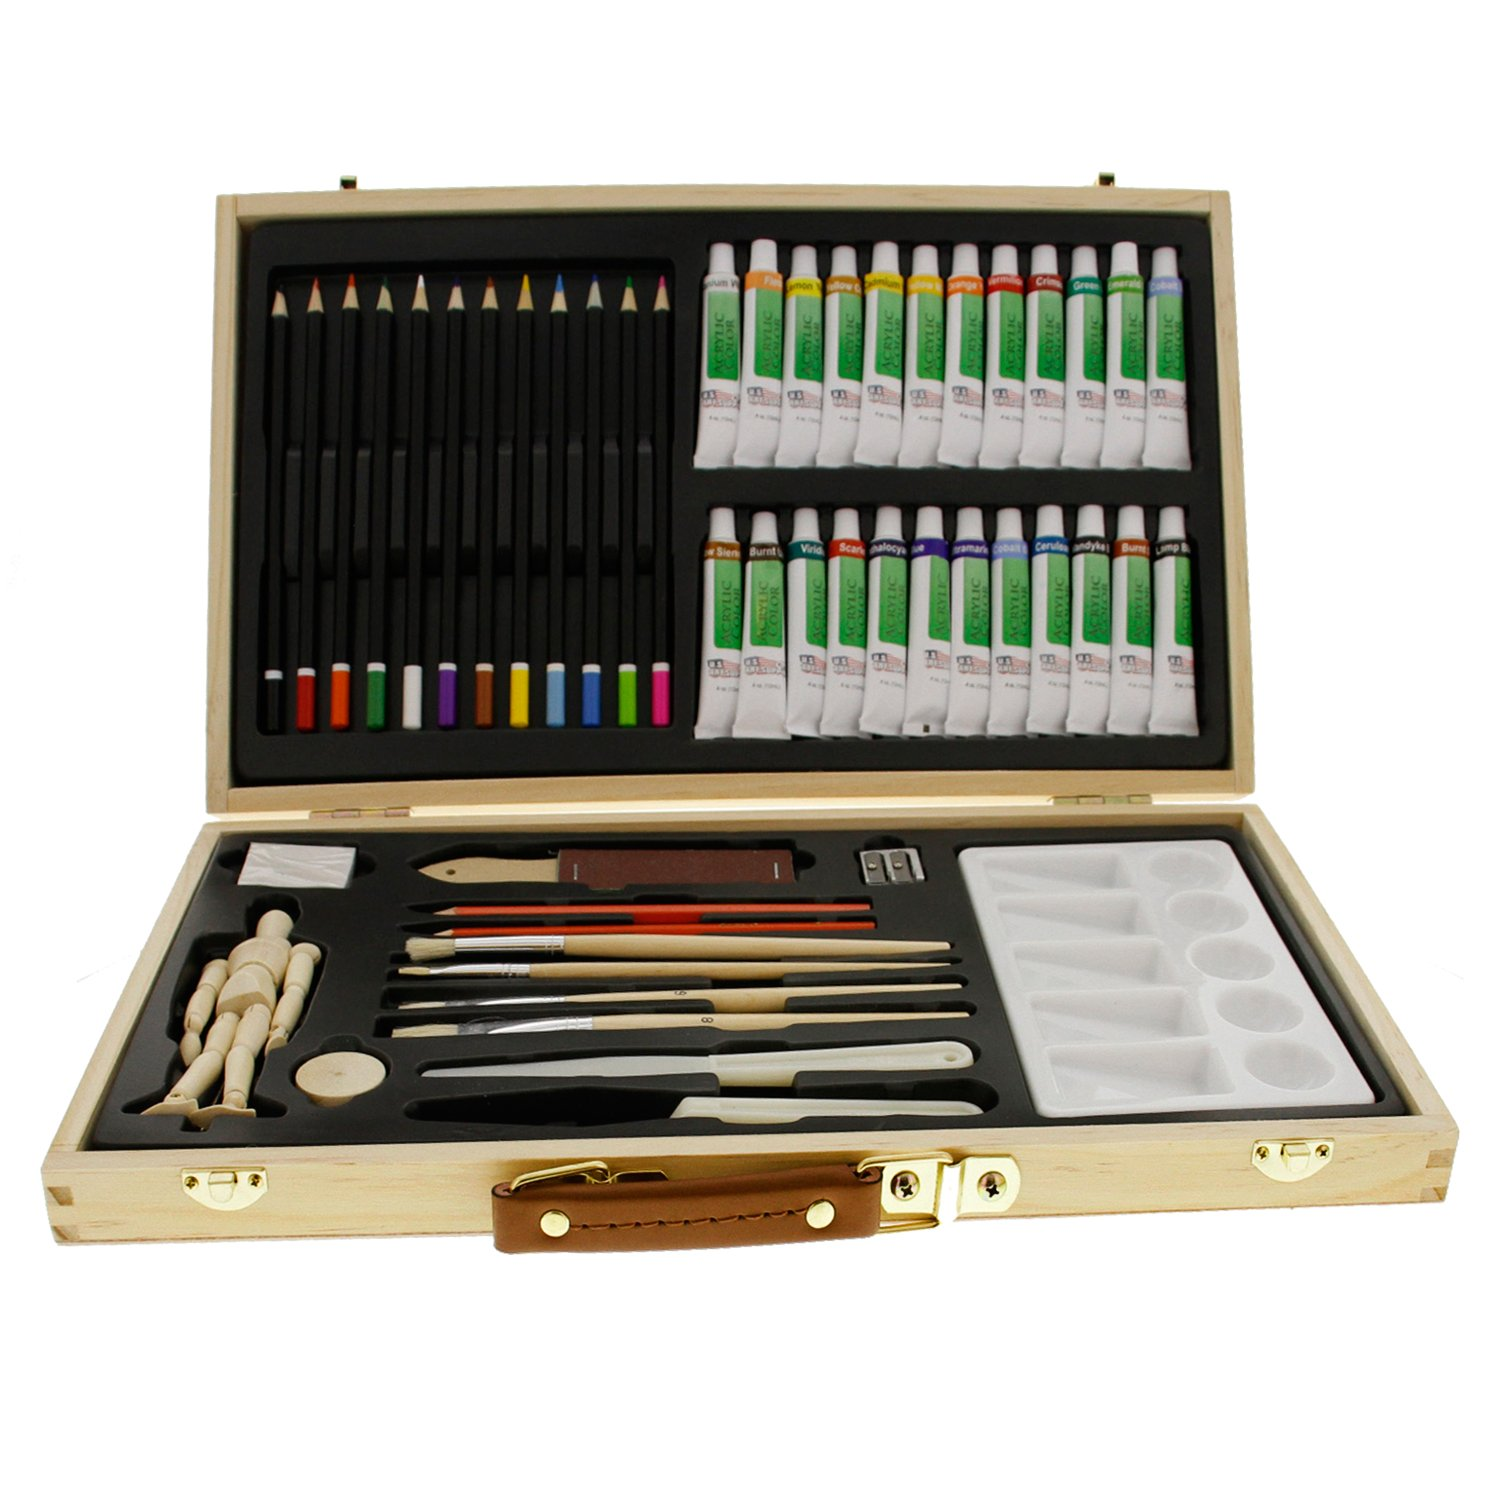 US Art Supply 50-Piece Acrylic Painting Set with, Wood Storage Case, 24-Tubes Acrylic Colors, 12 Colored Pencils, 2 Graphite Pencils, 4 Artist Brushes, 5.5'' Manikin, Palette Knives, Eraser, Pencil Sharpener, Plastic Palette with 10 Wells-Great Student Art